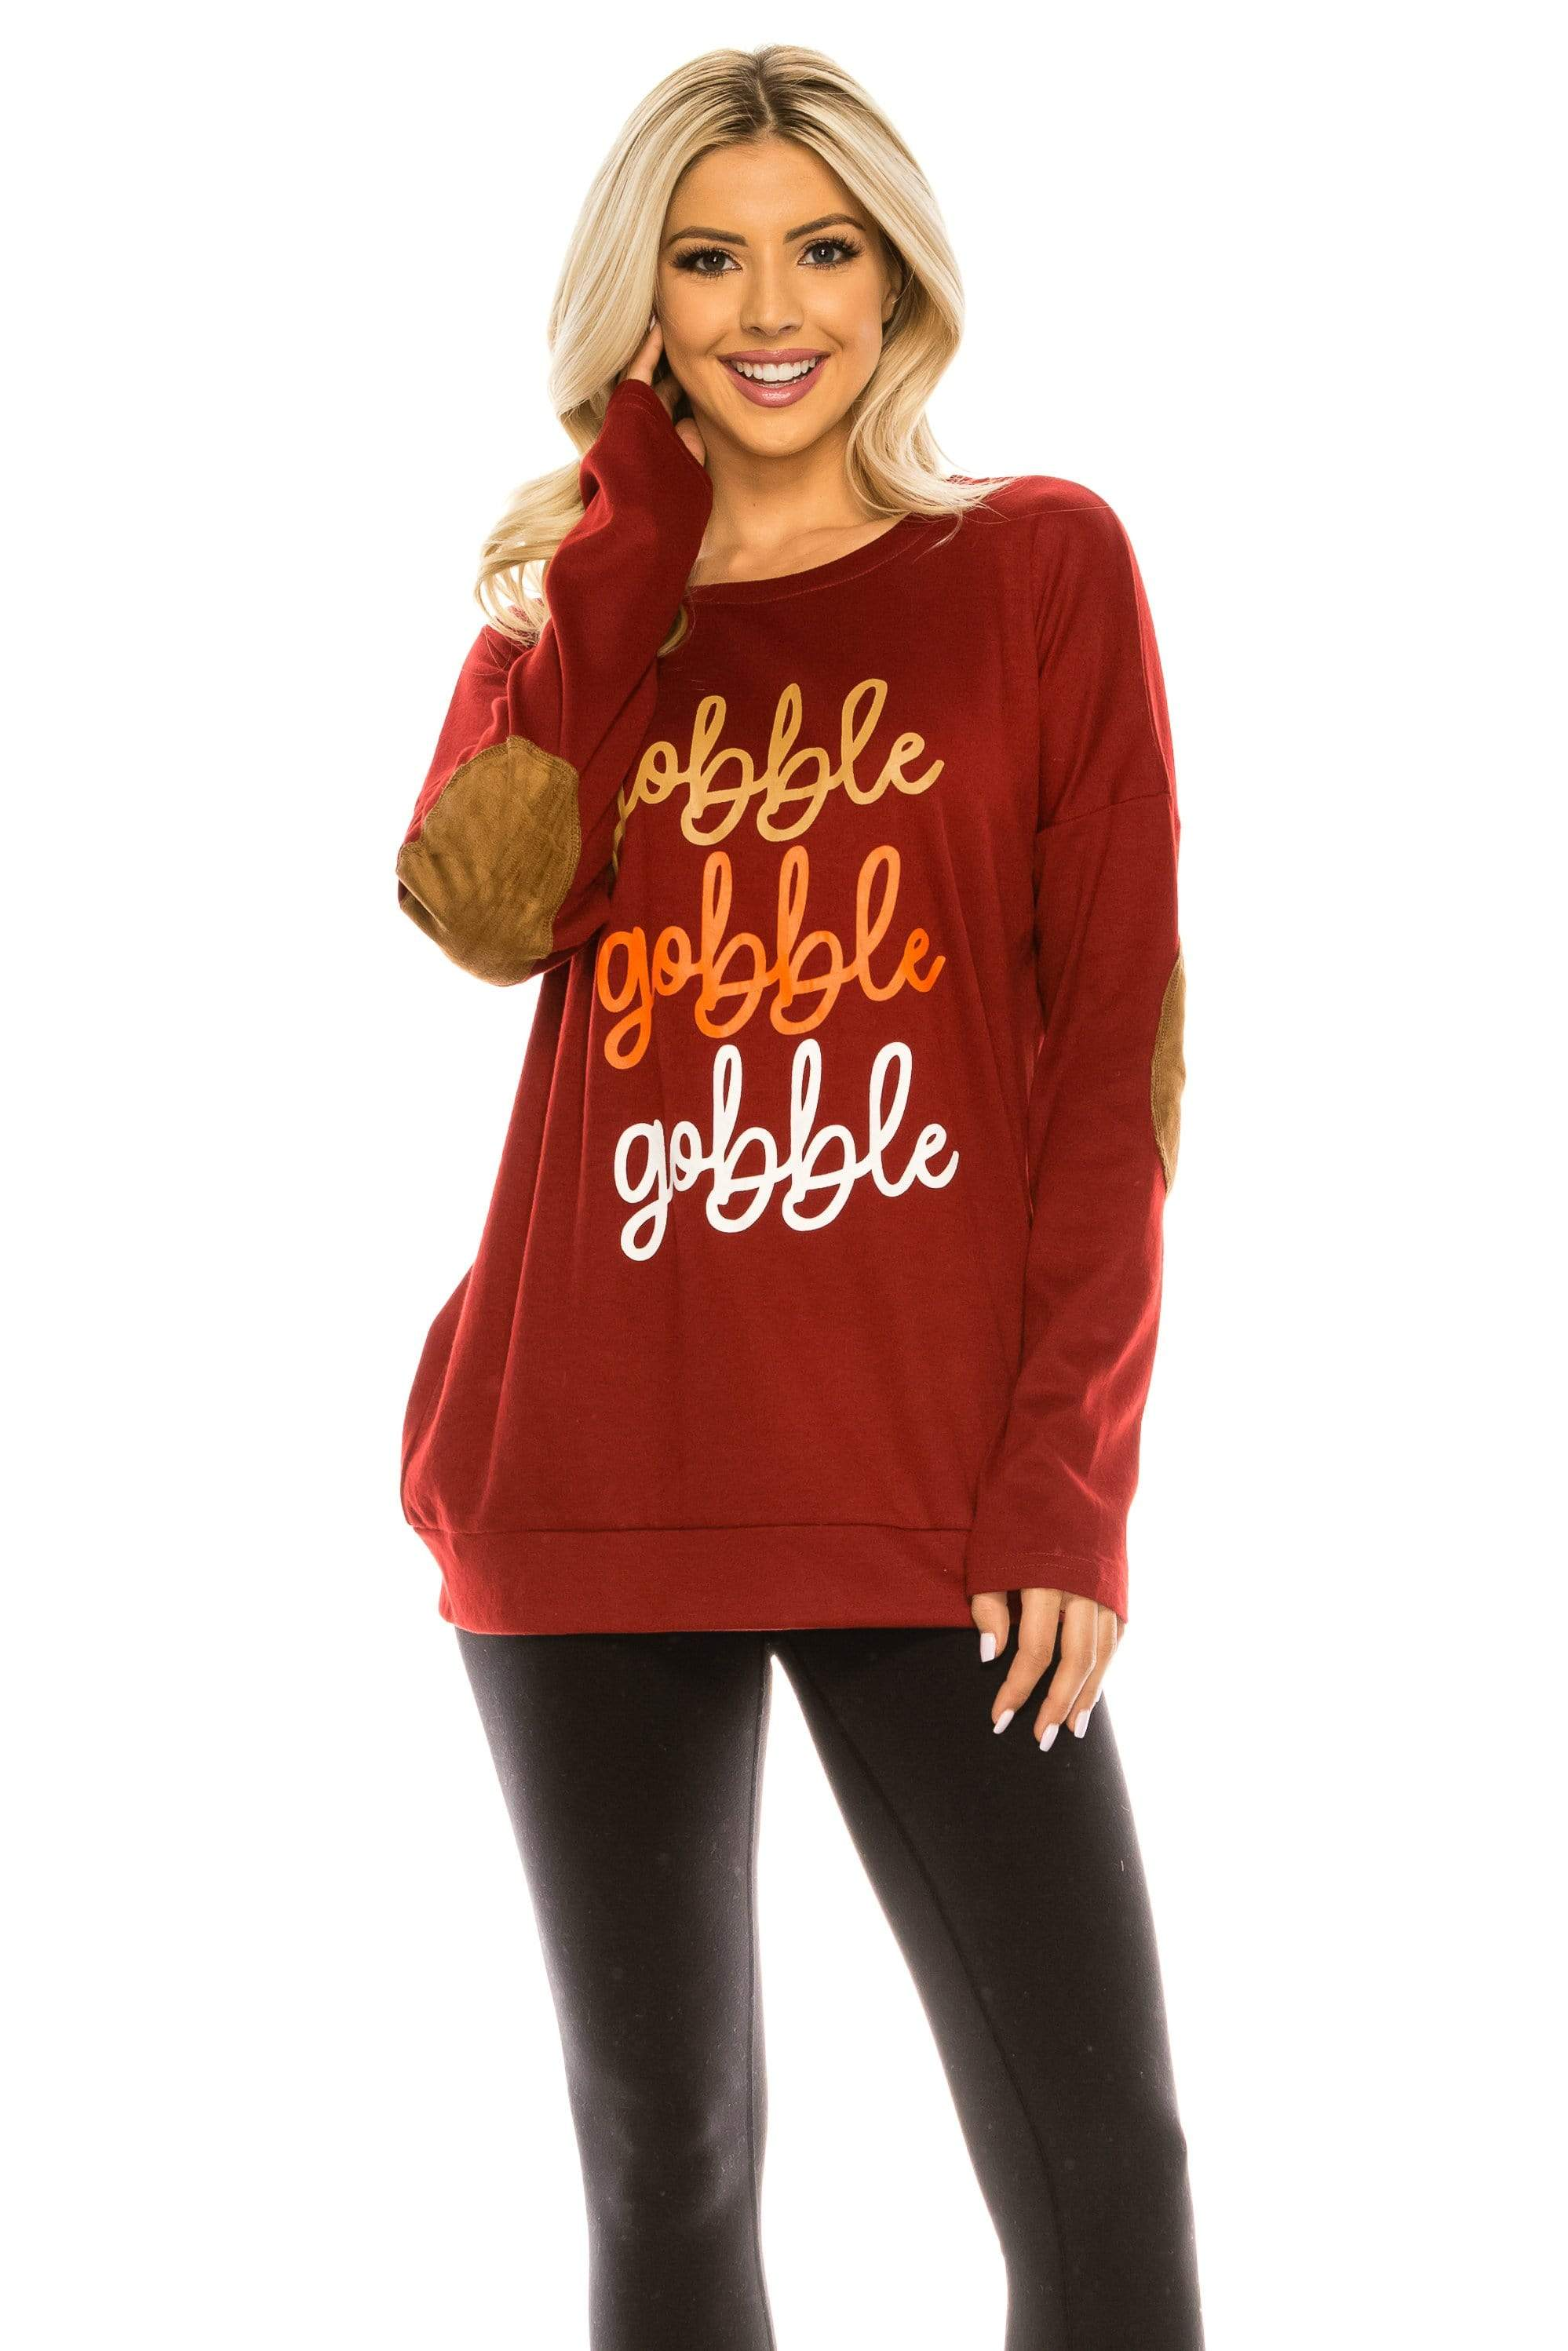 Haute Edition WOMEN'S TOP GOBBLE BURGUNDY / S Haute Edition Women's Thanksgiving Tunic Elbow Patch Graphic Tees